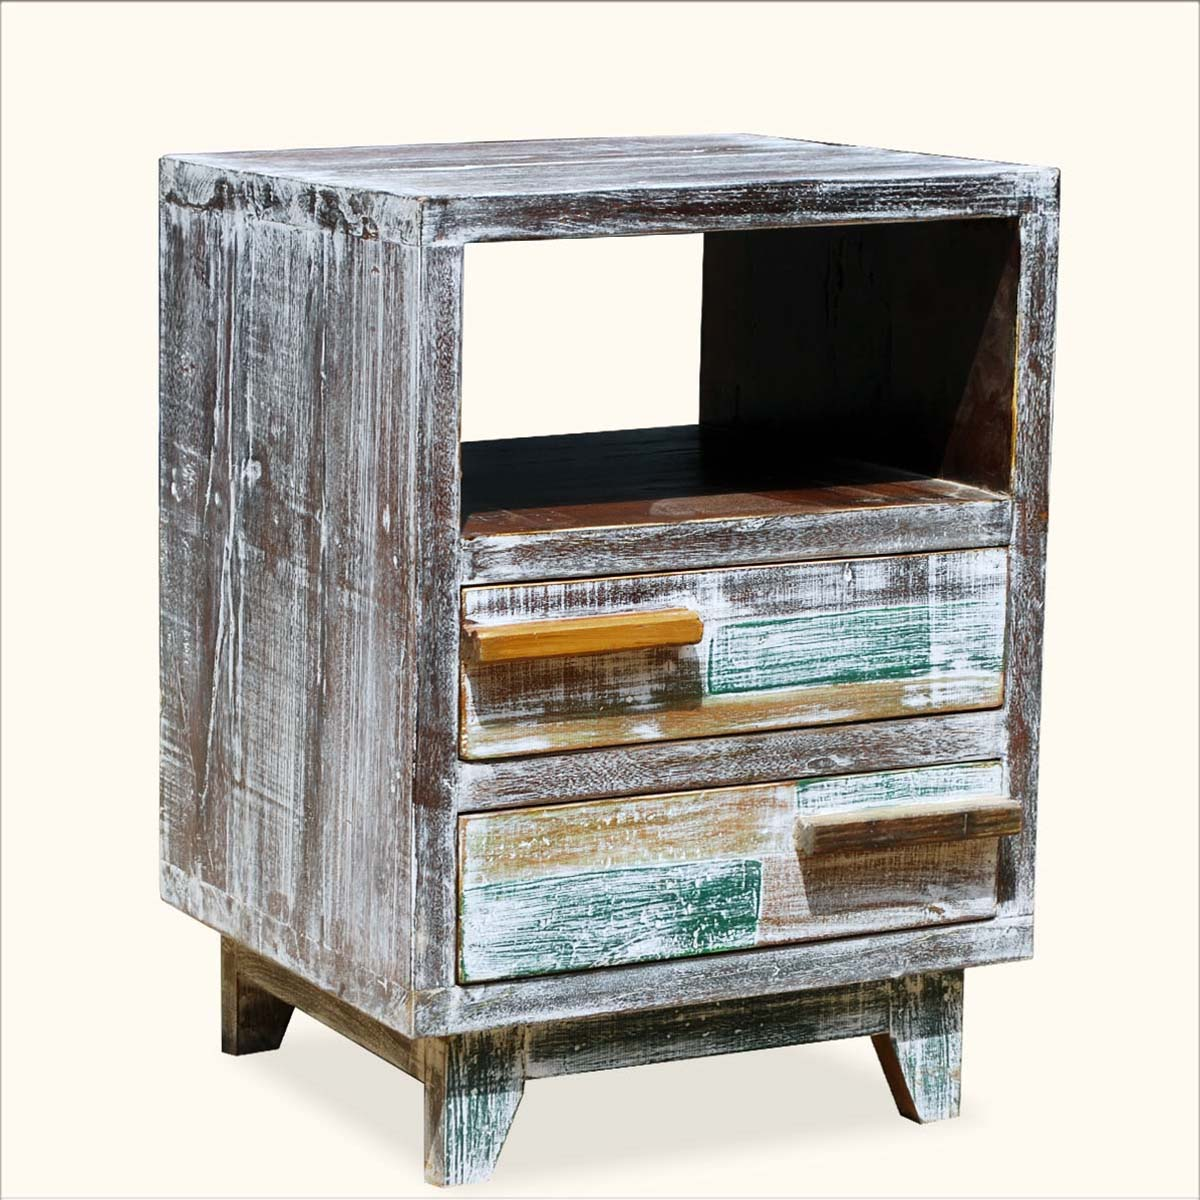 dinner table ideas probably terrific best distressed wood end reclaimed with shelf and drawers awesome tables desk lamp metal garden coffee stone bench made from pallets narrow